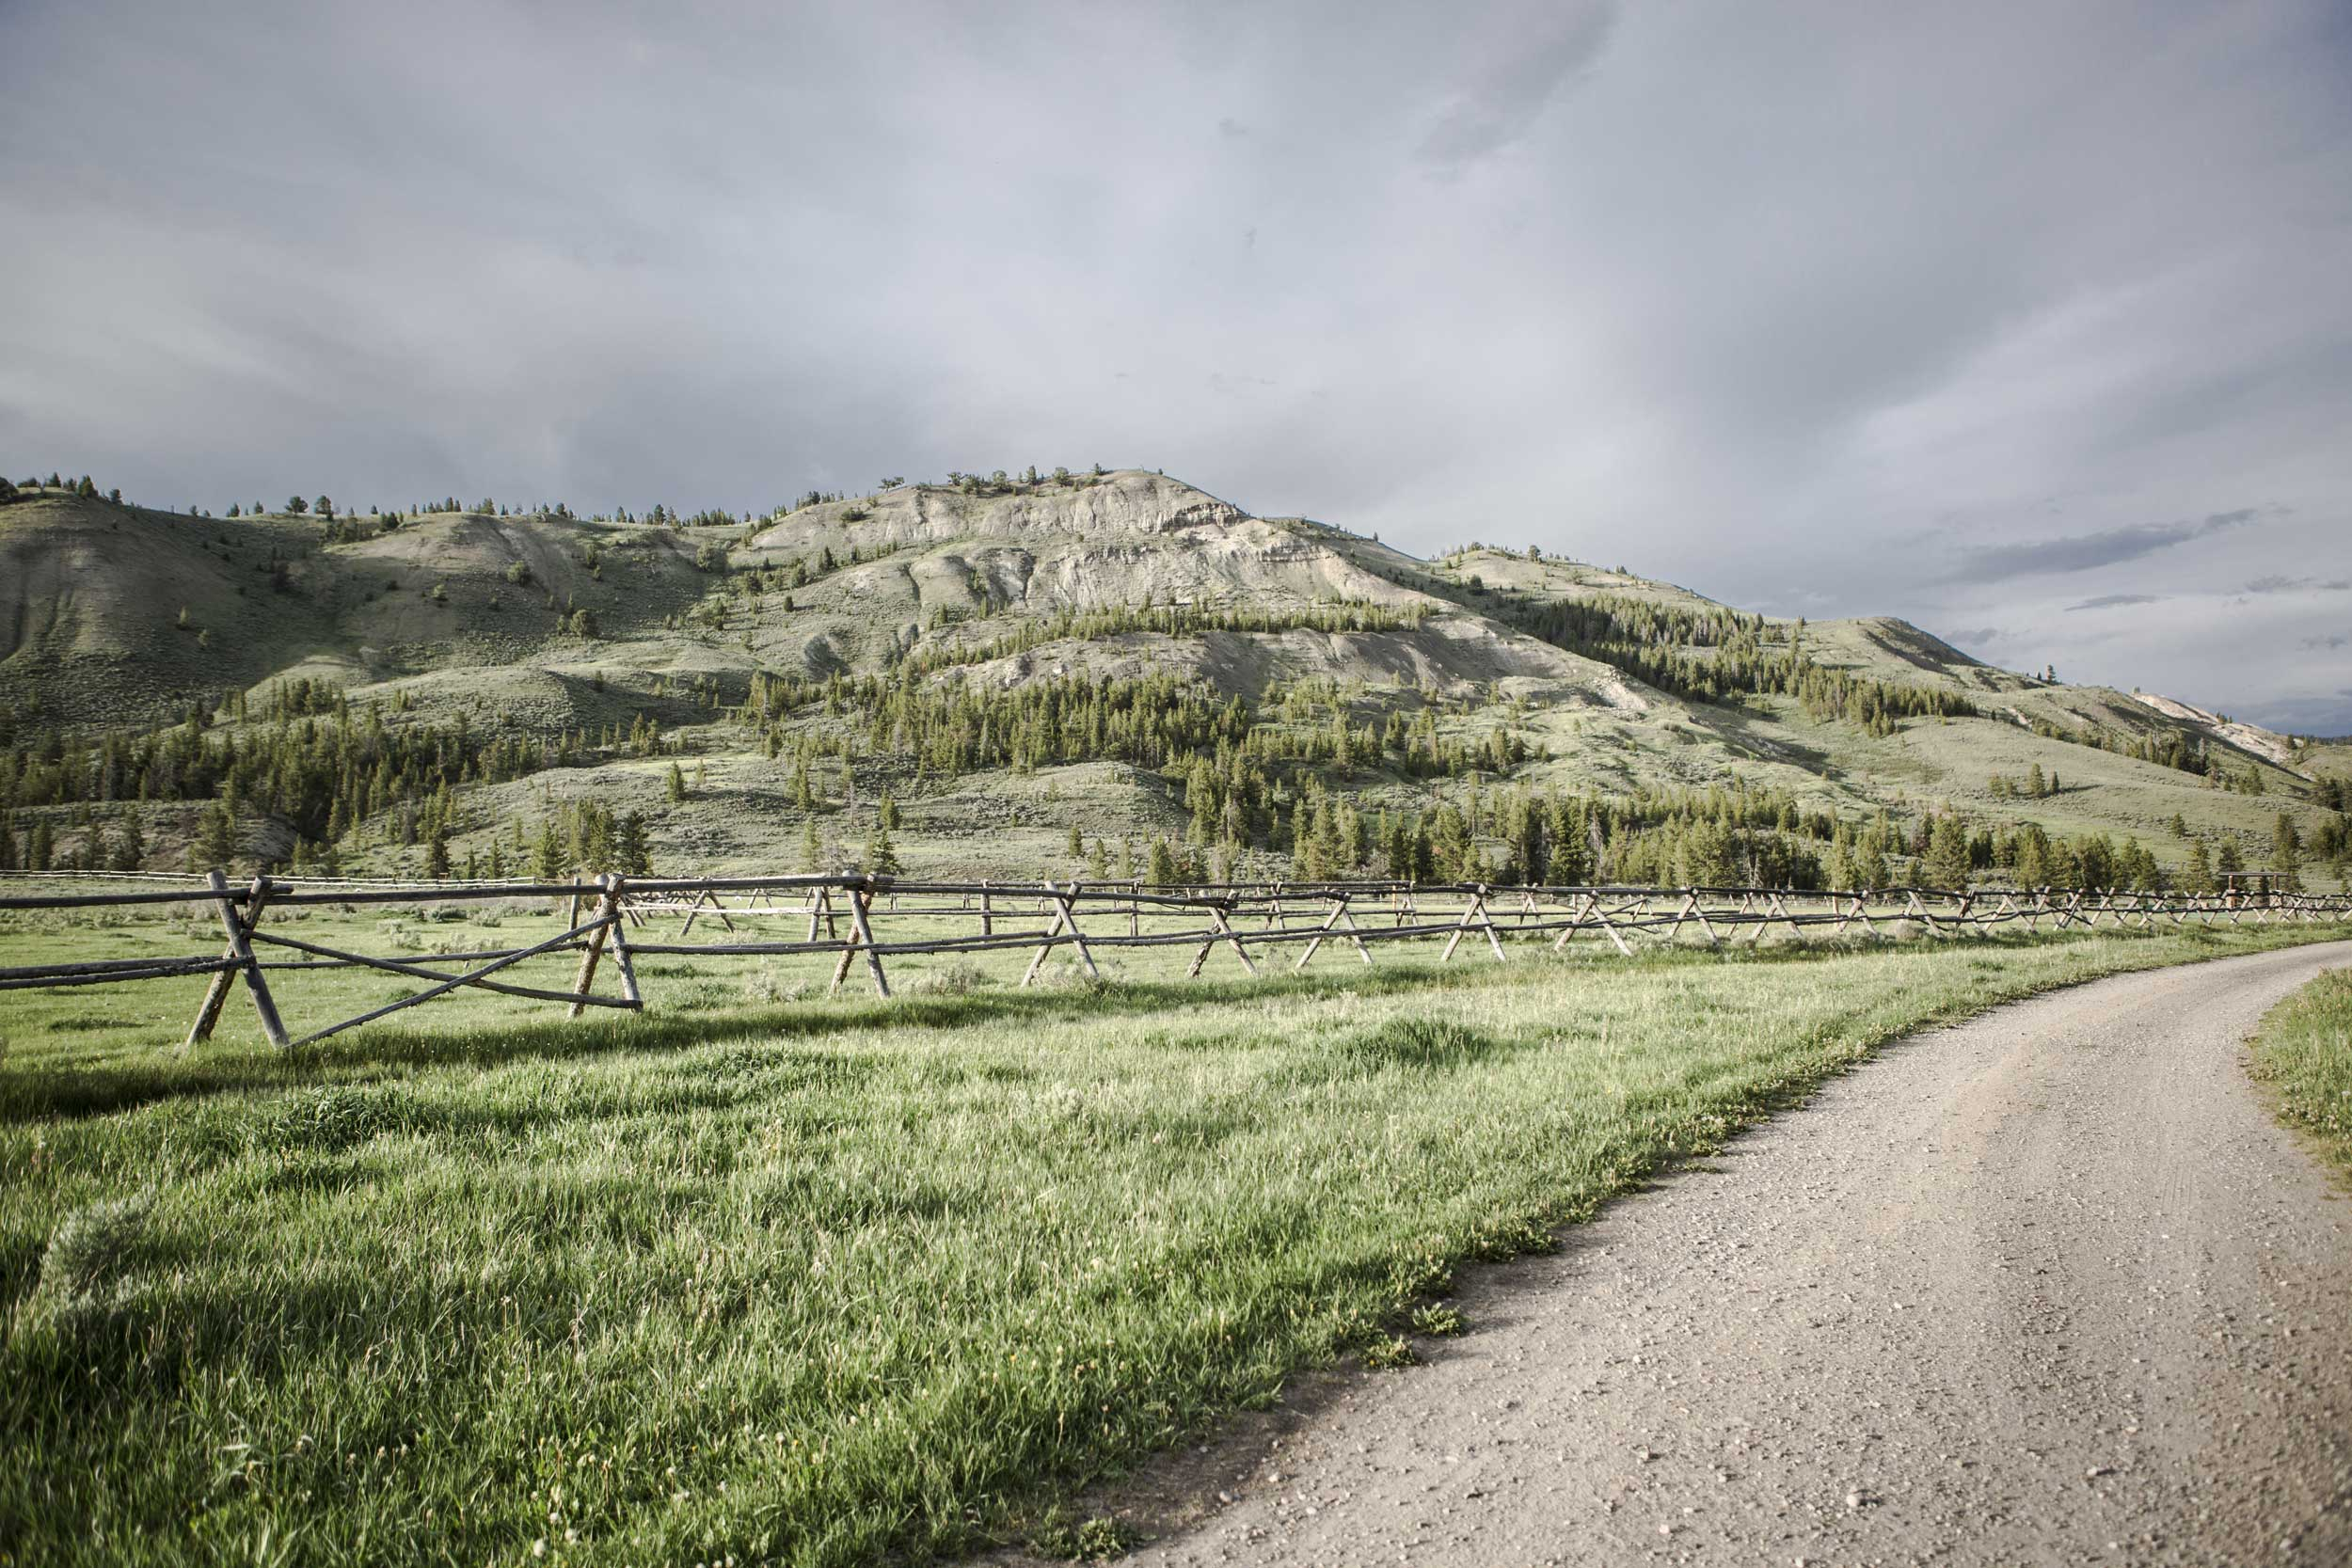 Beautiful scenery at Nine Quarter Circle Ranch fence and road in Montana.